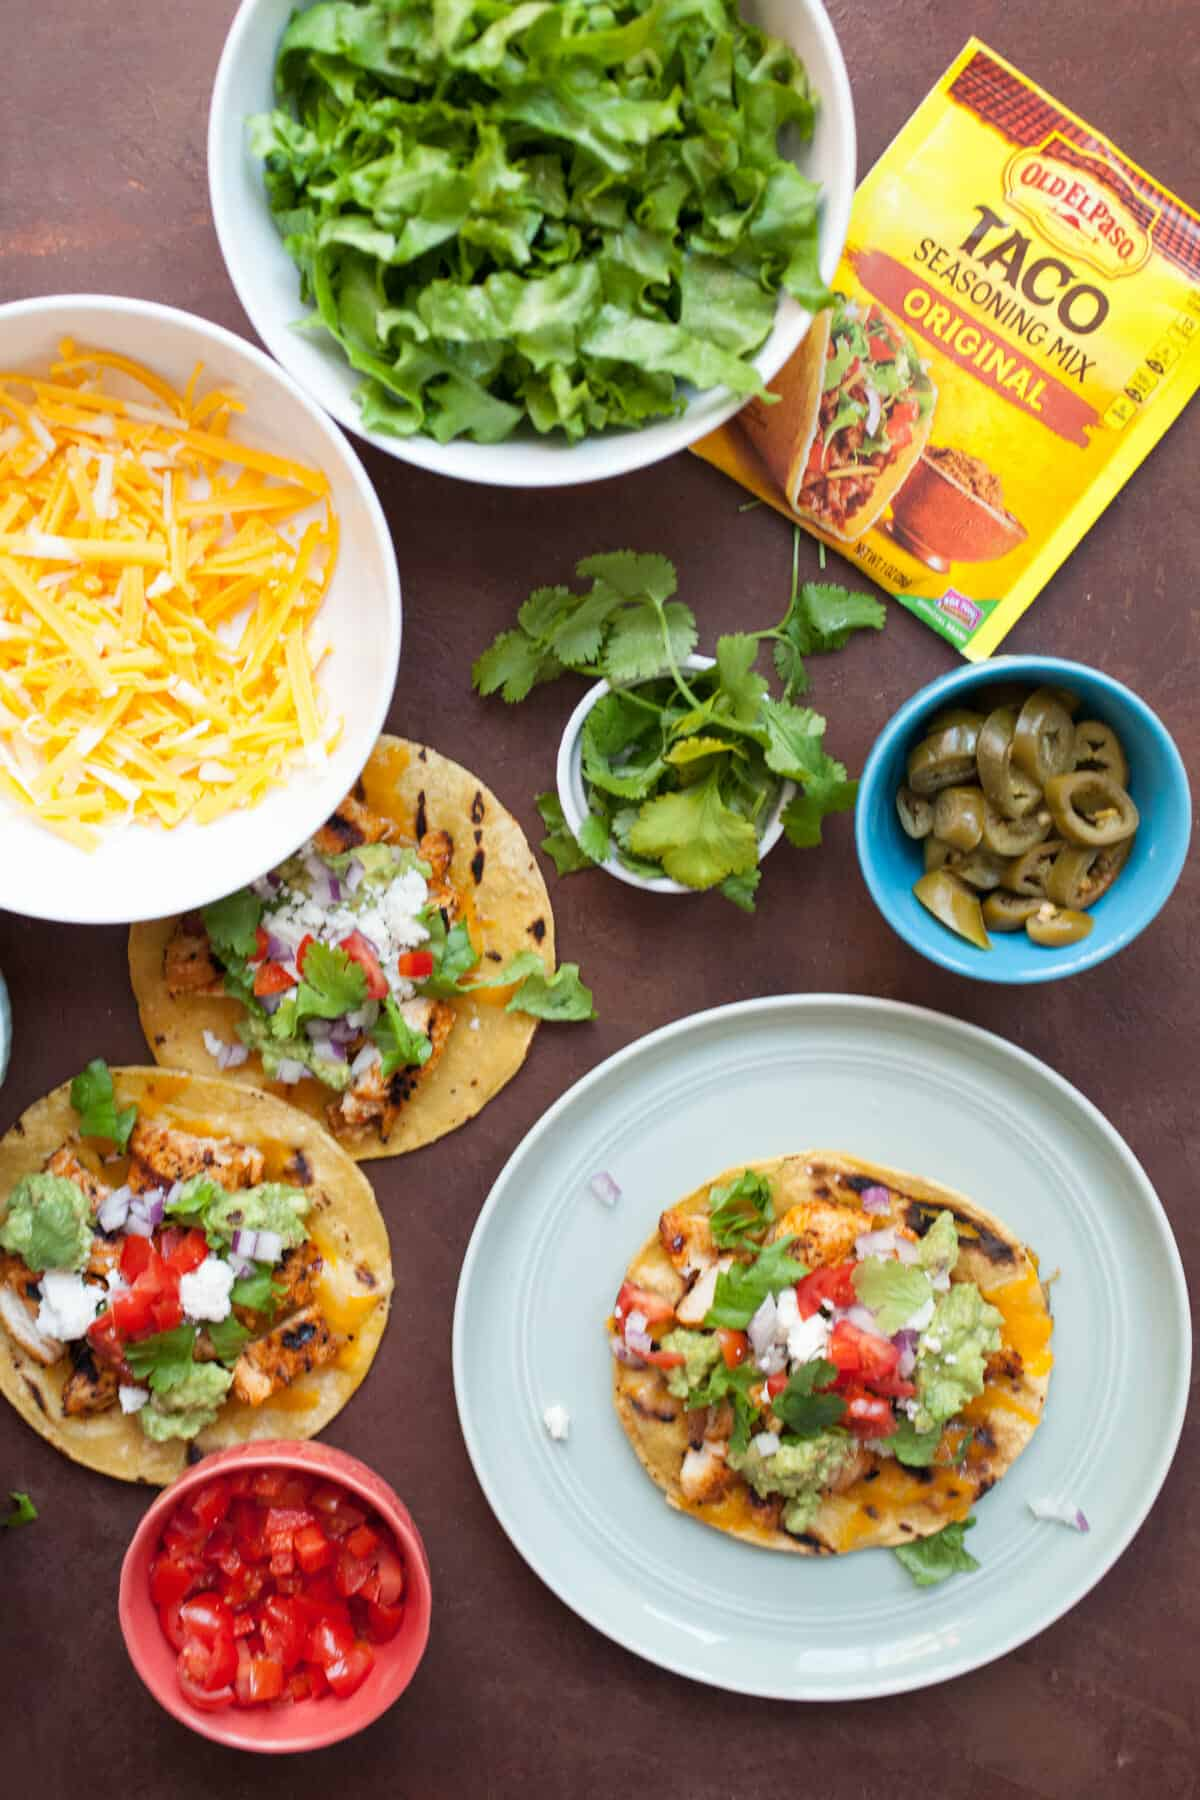 Grilled Chicken Tostadas: Say hello to grilling season the right way with these easy grilled chicken tostadas! Topped with spicy fajita chicken, cheese, and toppings and made entirely on the grilll! | macheesmo.com